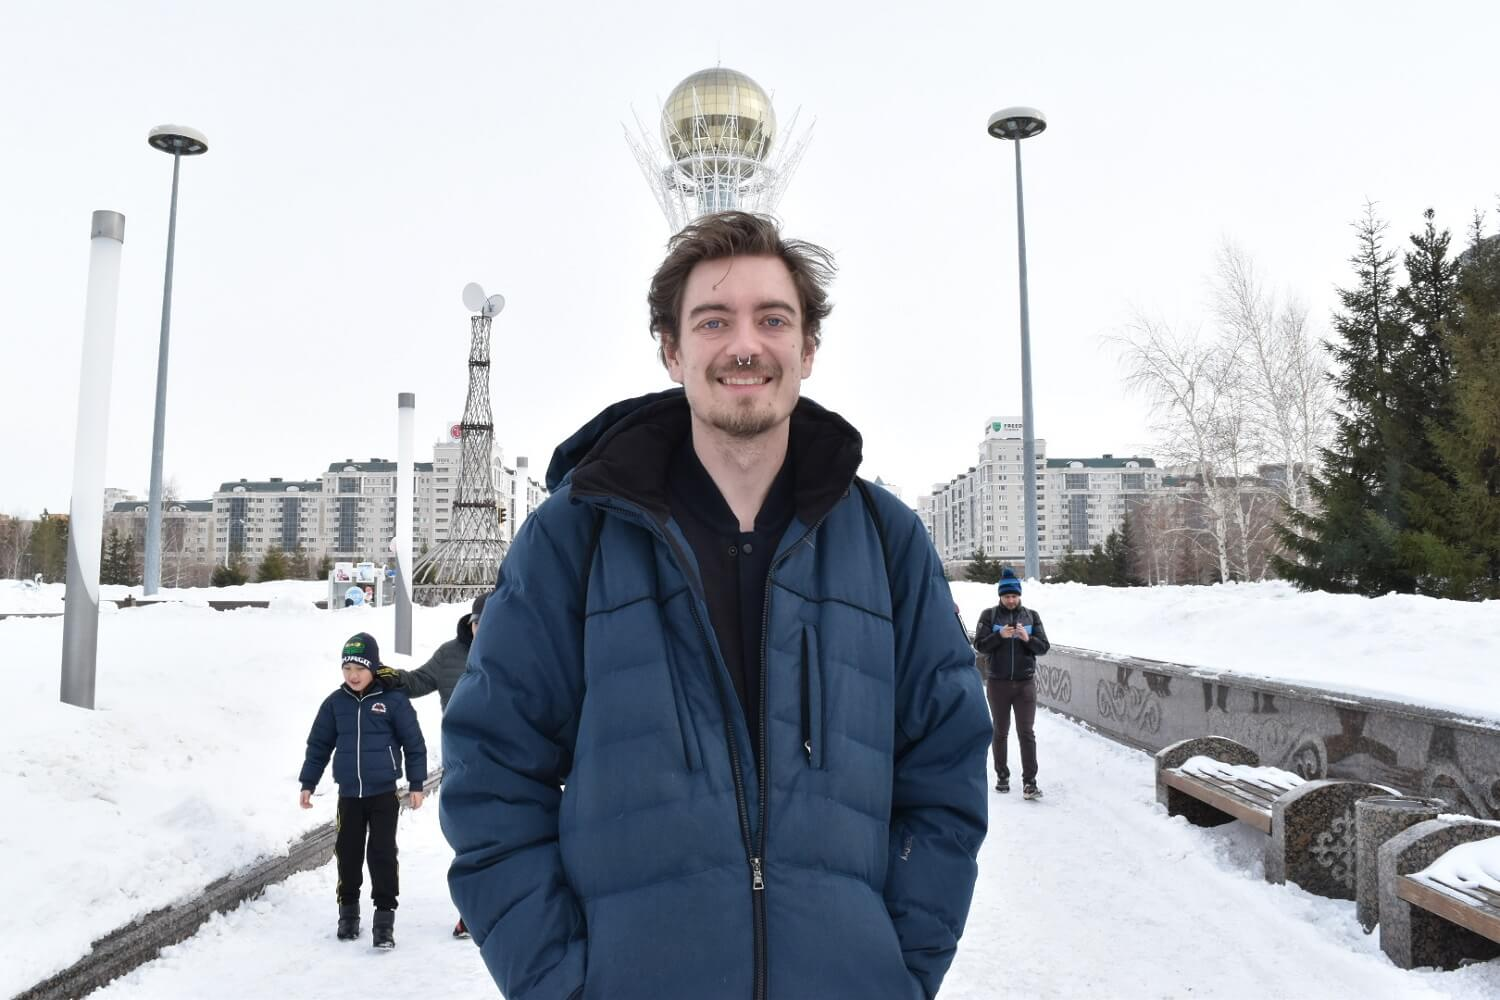 From the classroom: An MBA in Kazakhstan